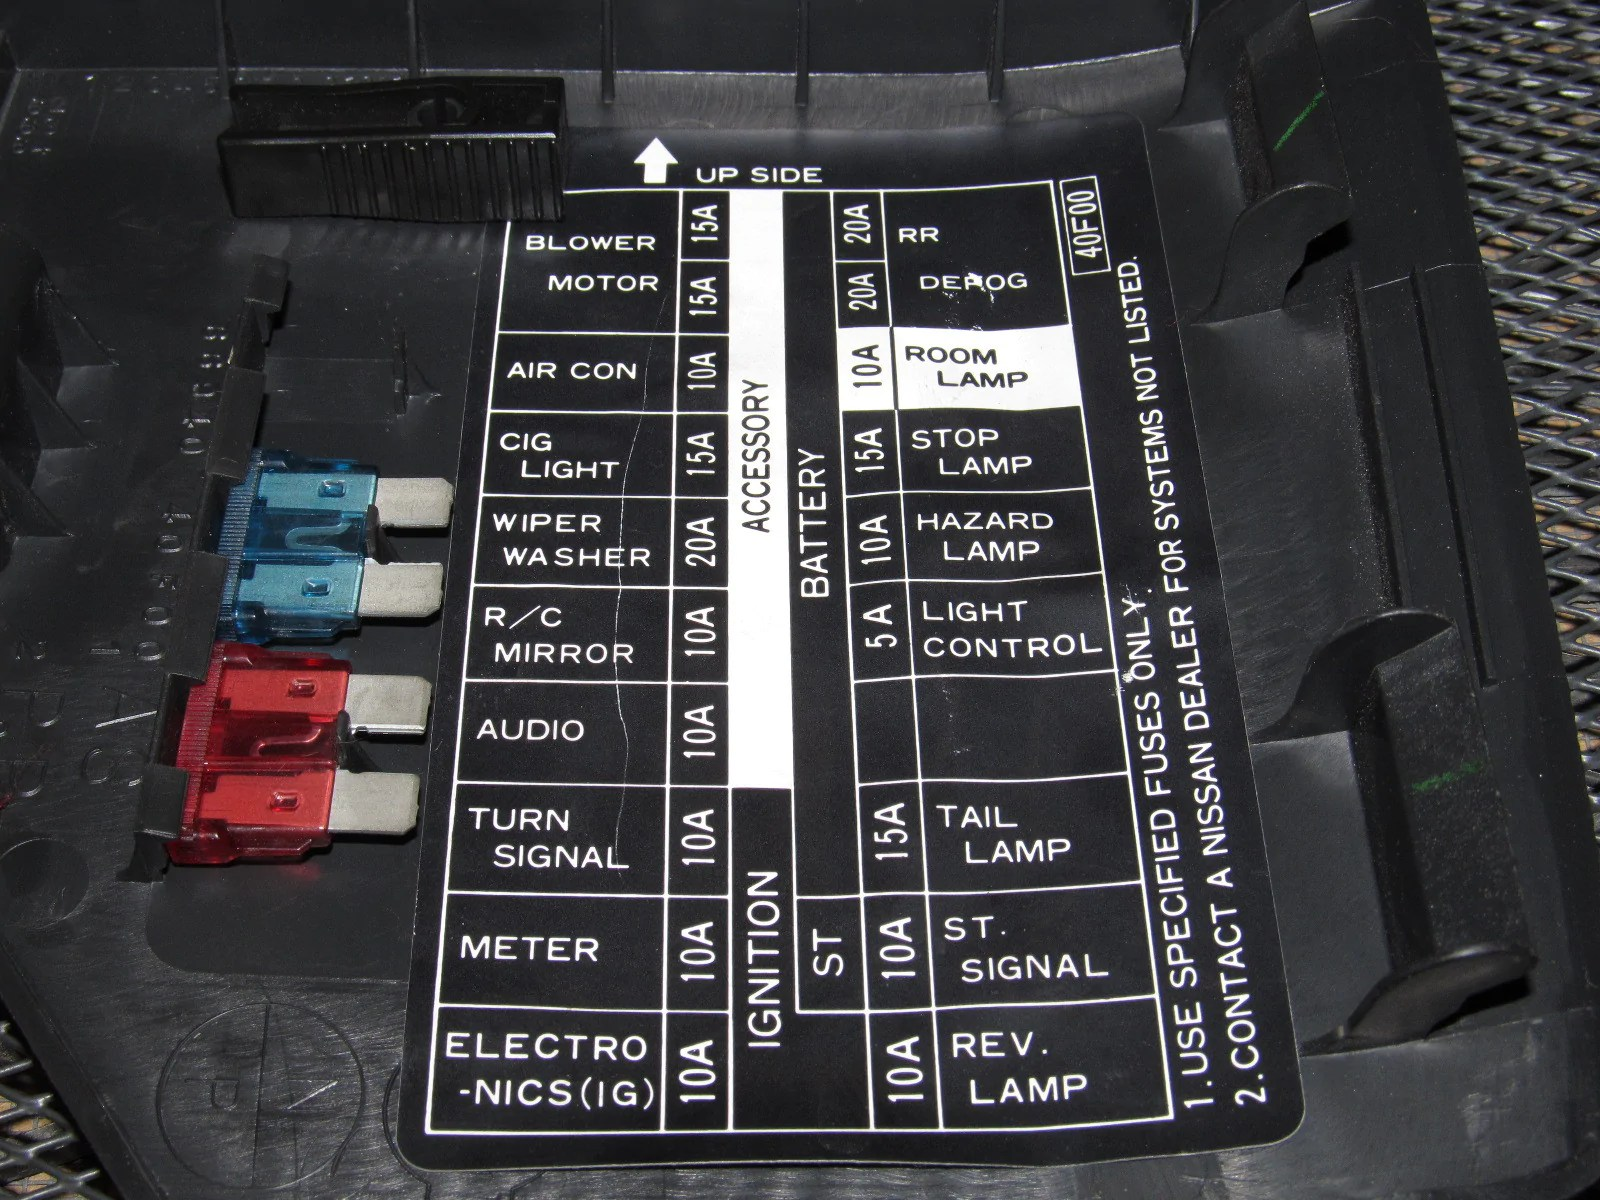 IMG_0241_bc4dfbbf 93f7 4ea2 ba97 c7ba394f9039?resize=618%2C464&ssl=1 1995 nissan 240sx interior fuse box diagram brokeasshome com ba fuse box diagram at gsmportal.co